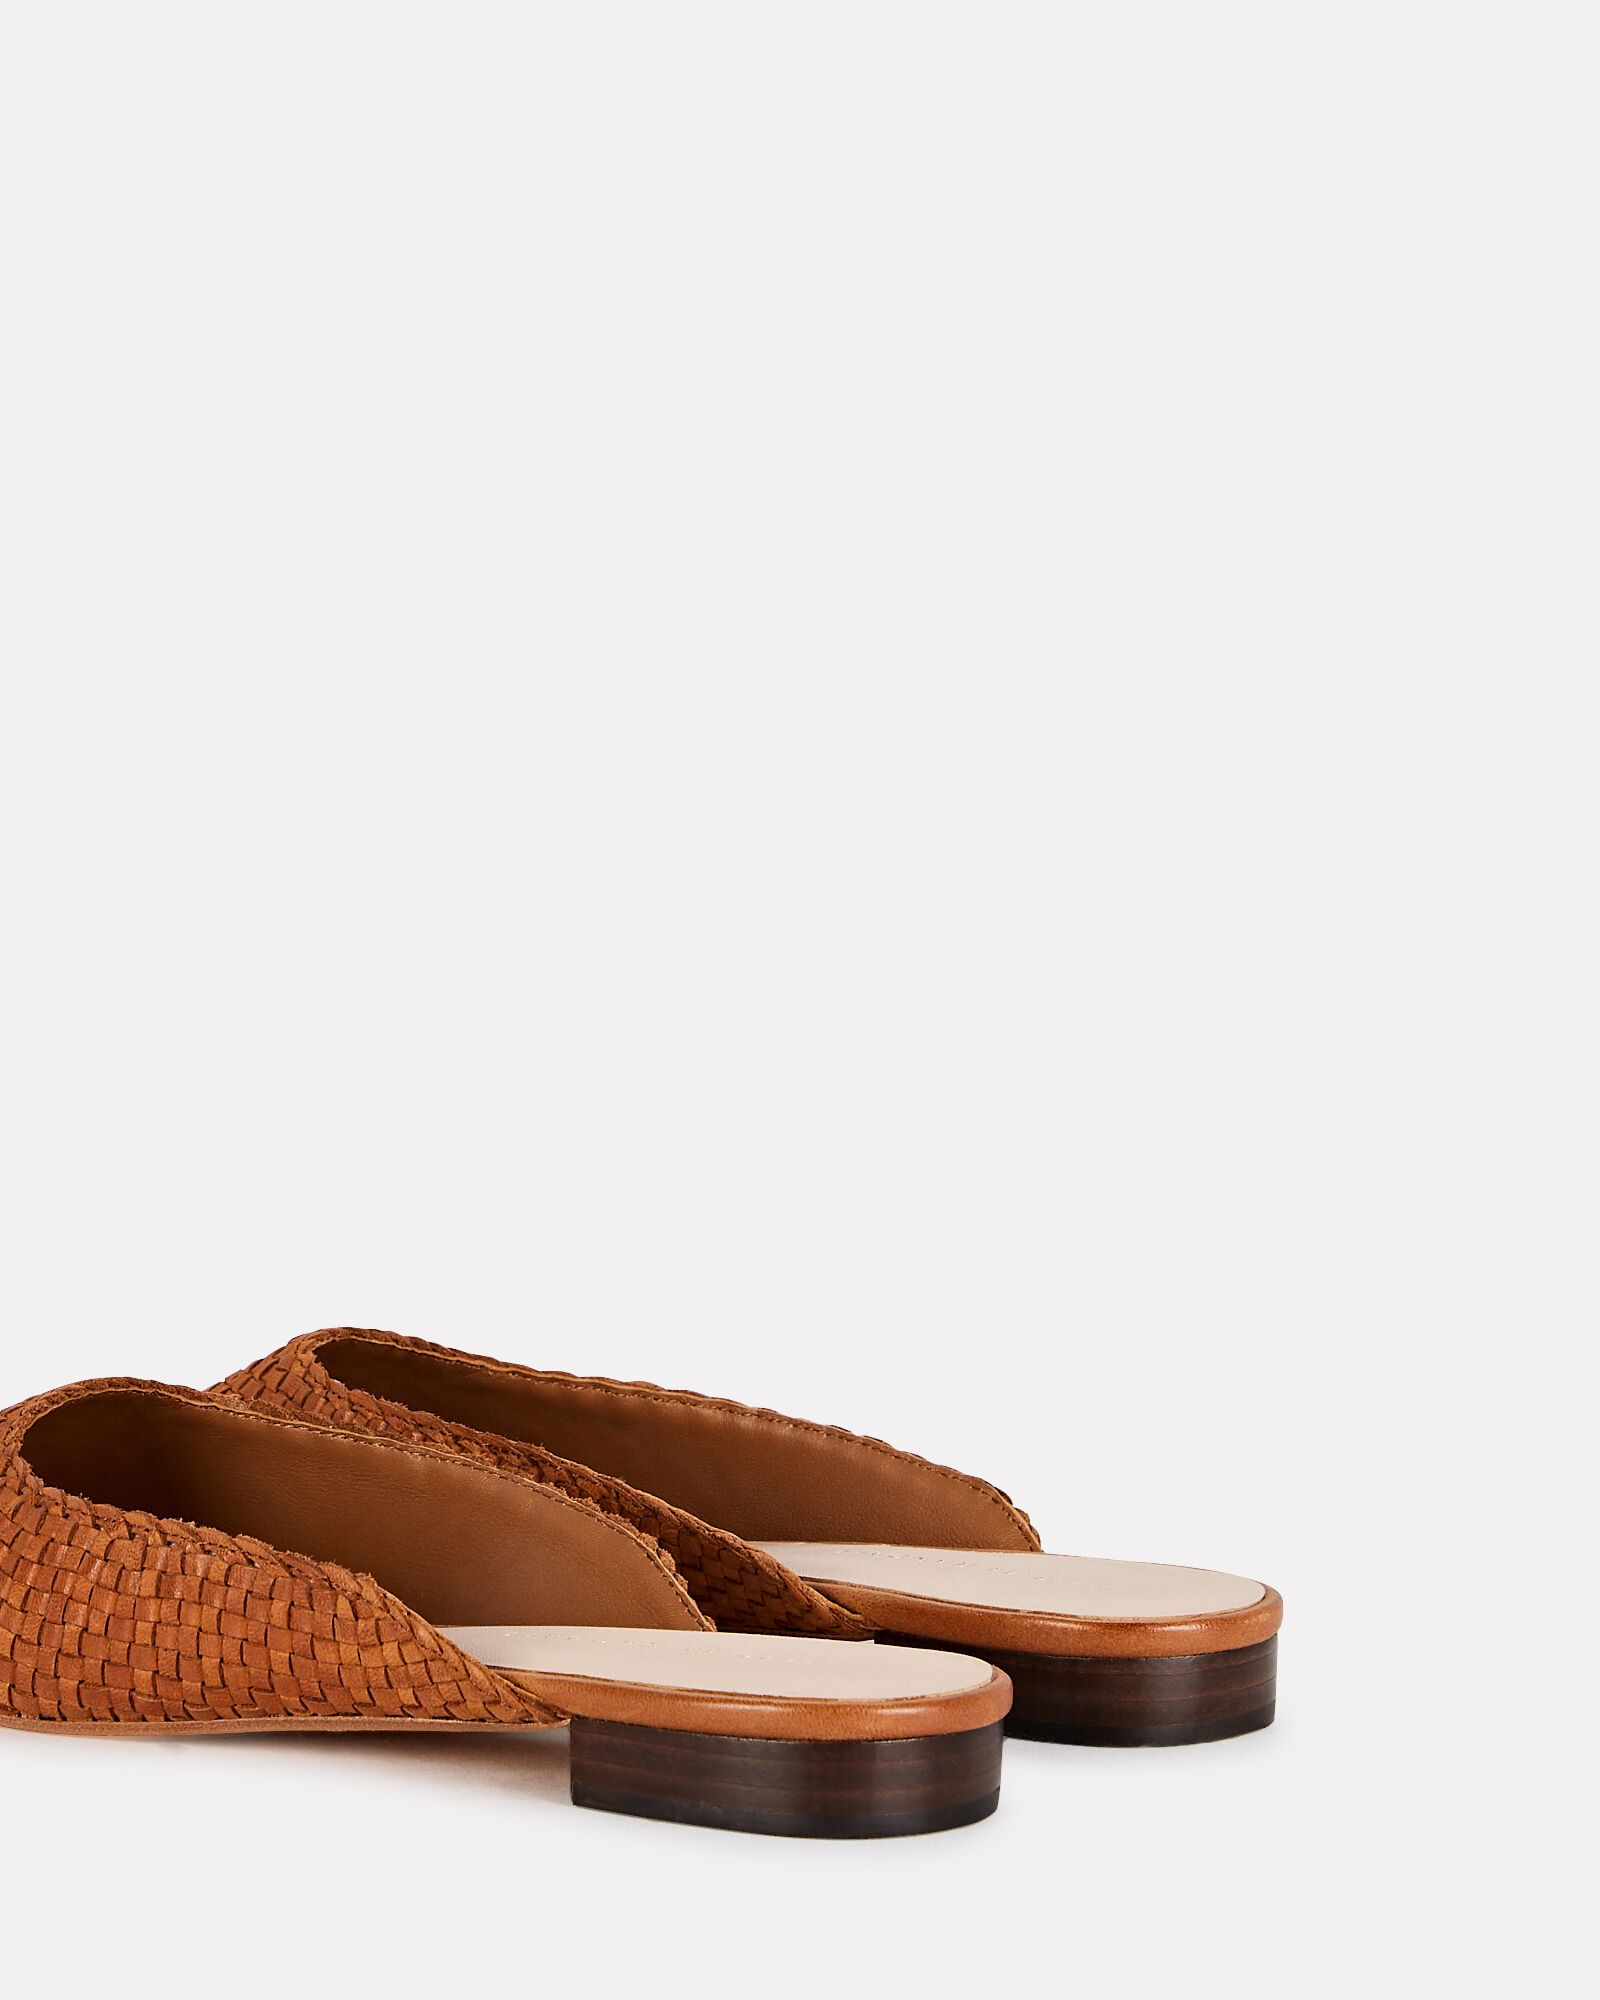 Zosia Leather Mule Flats, BROWN, hi-res